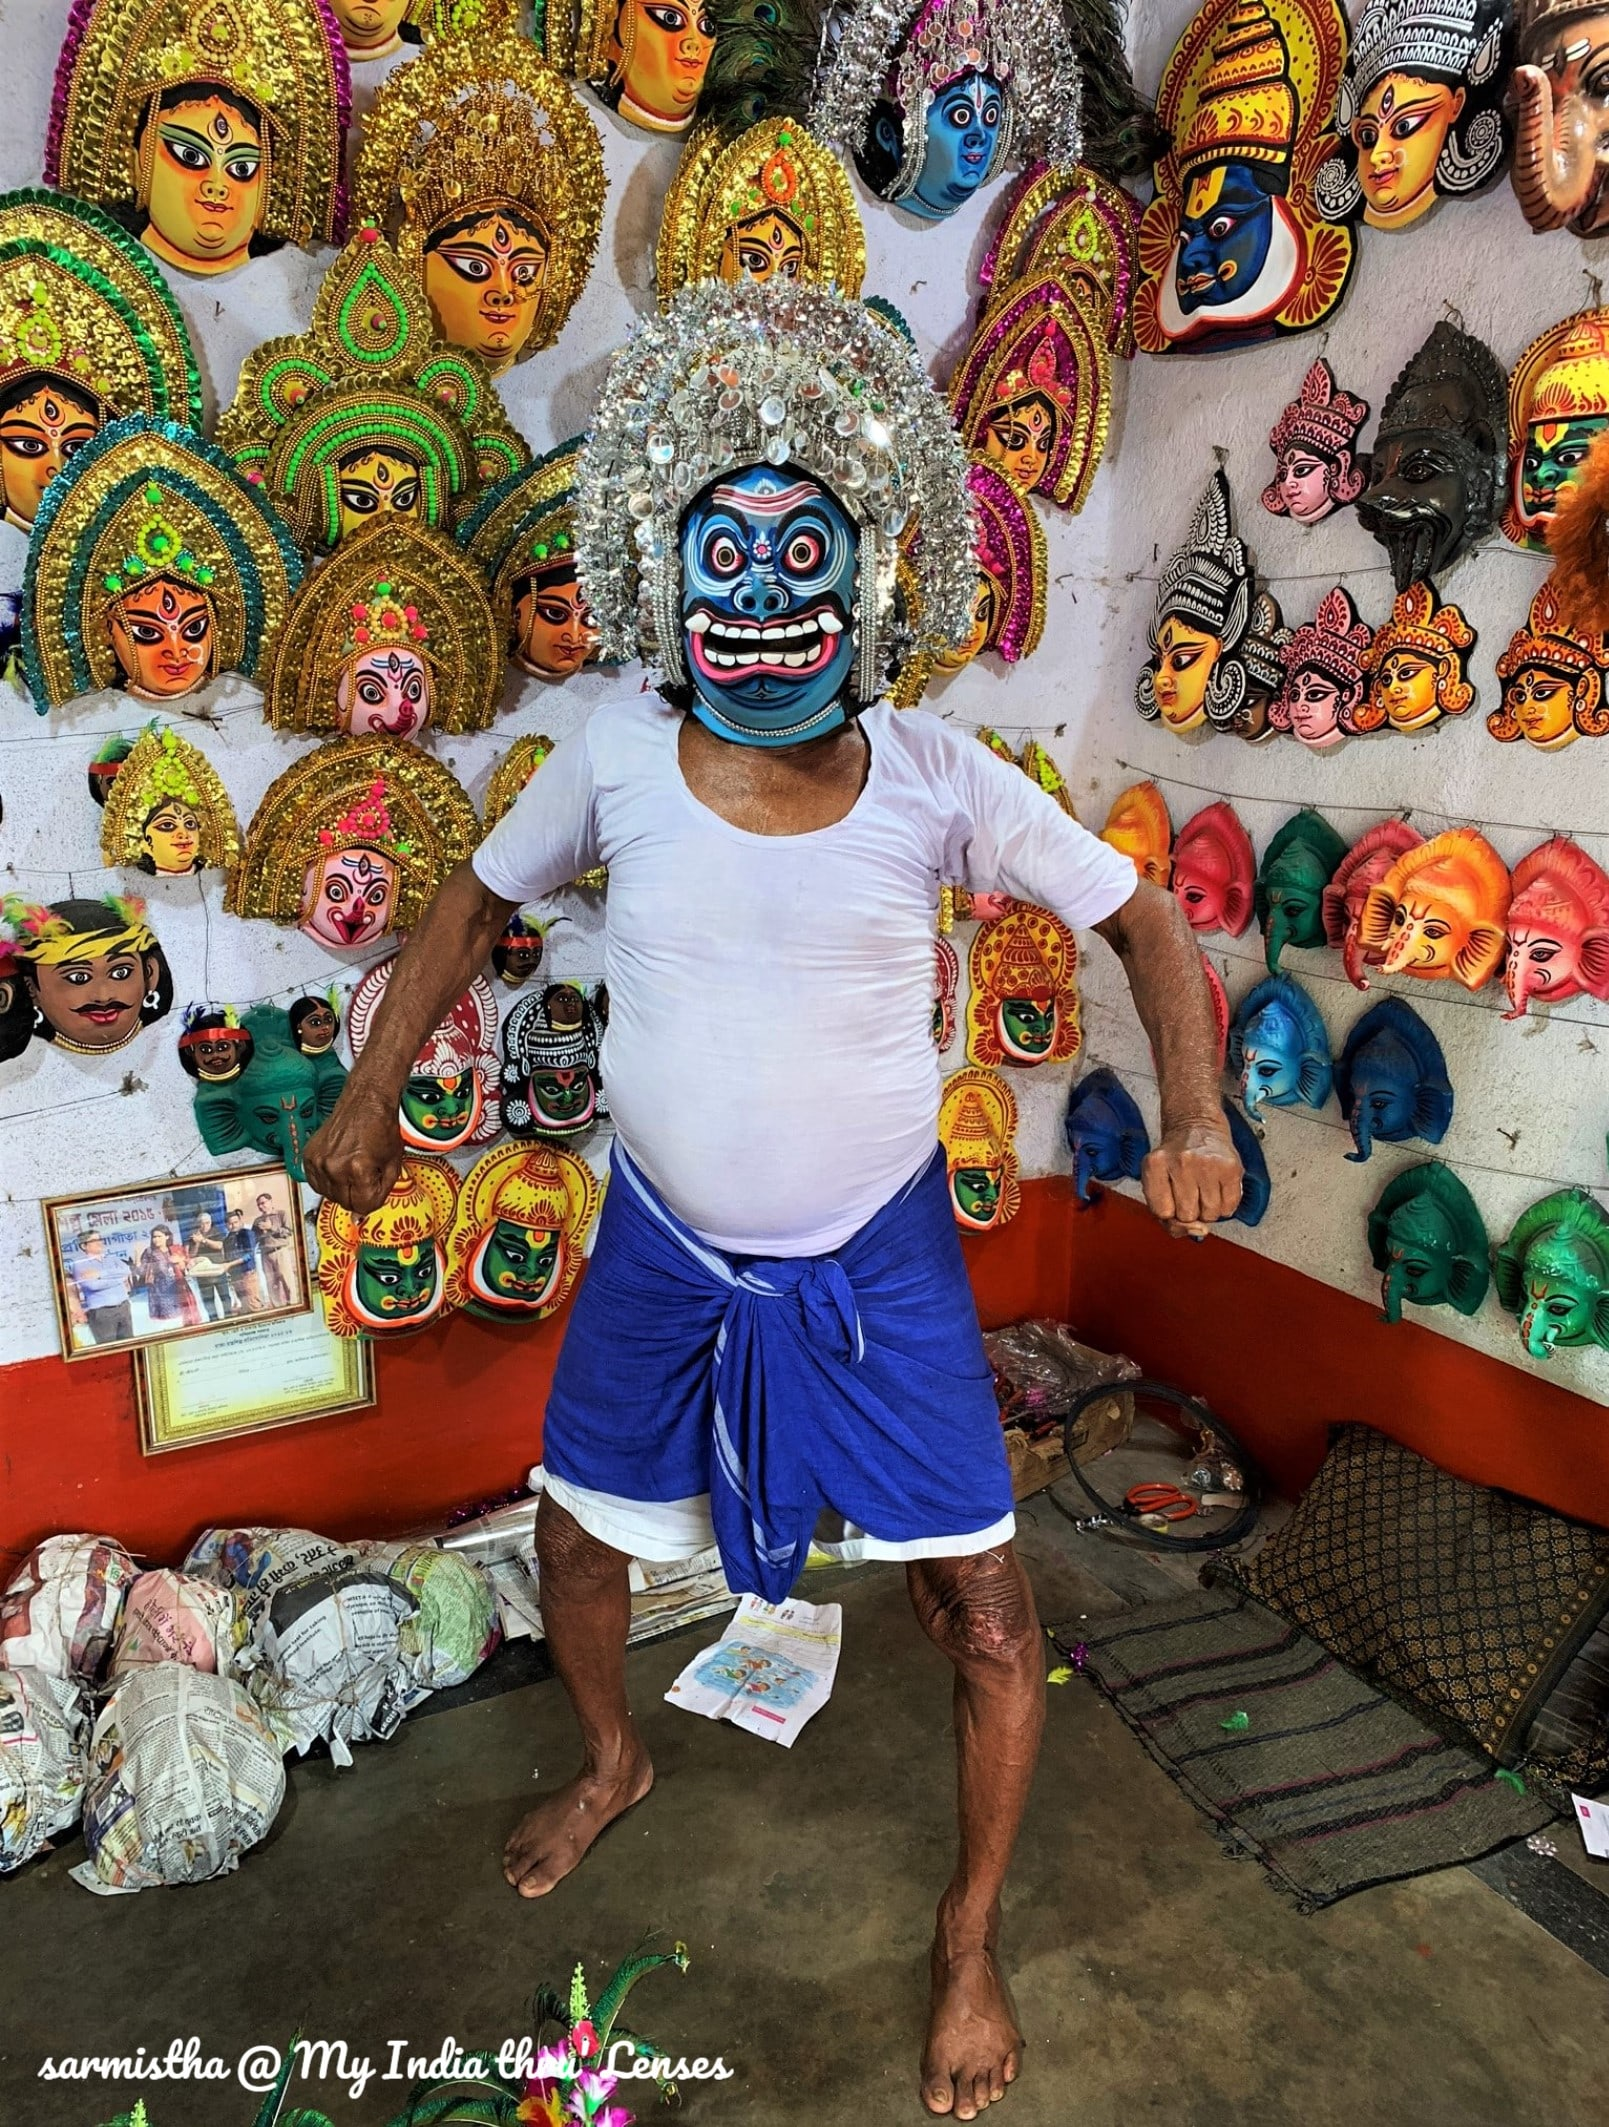 The Artisan posing for us with a demon mask